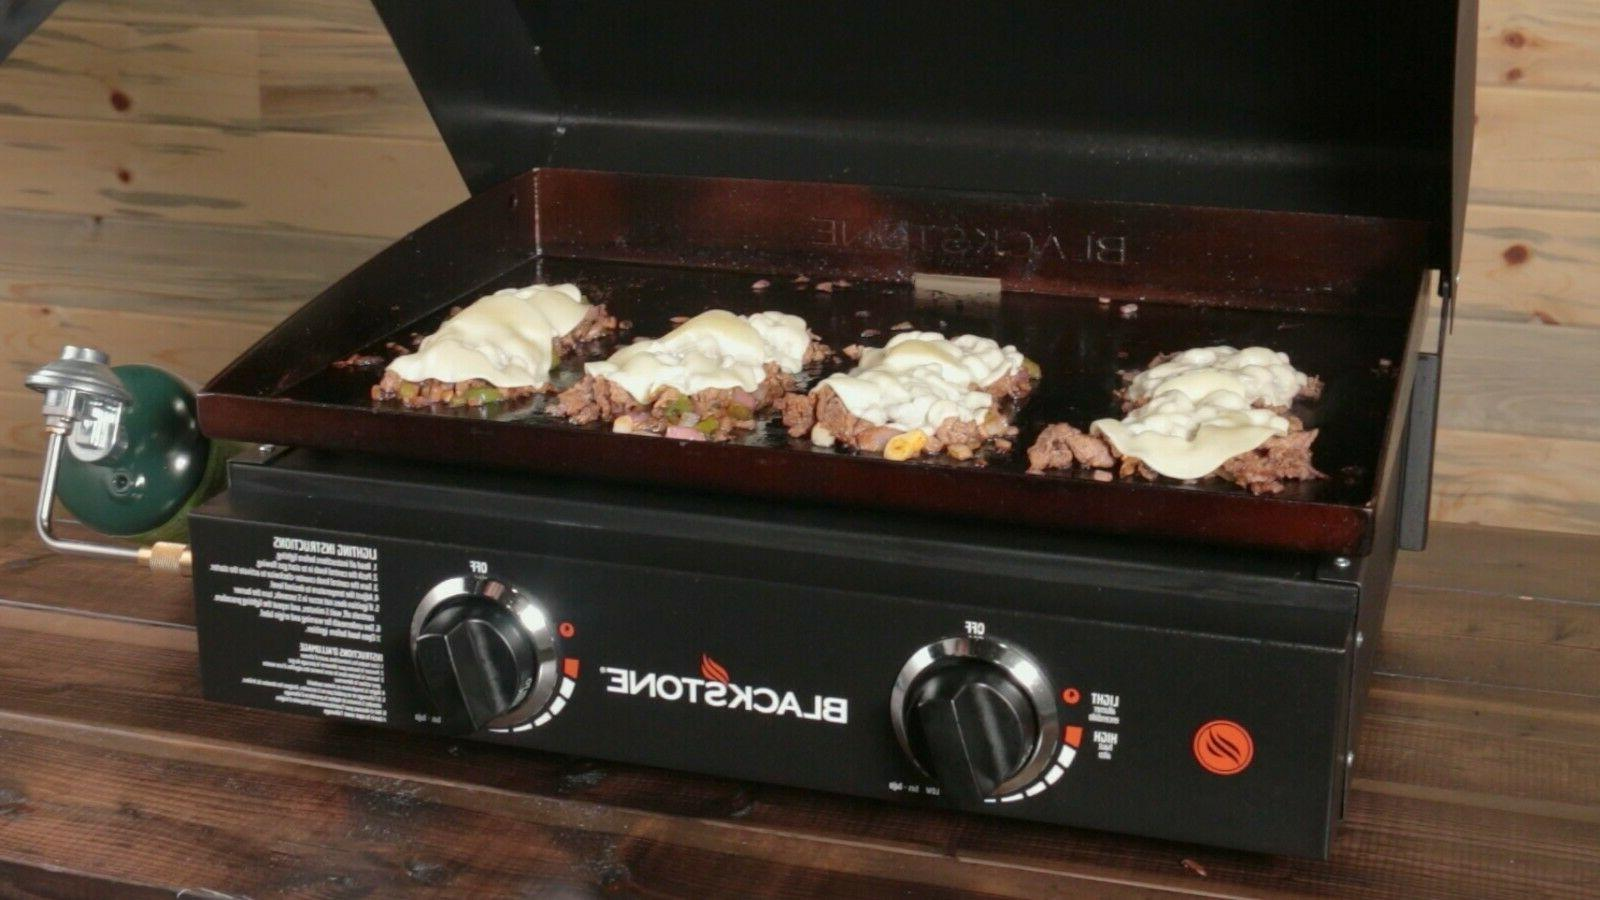 Blackstone Stand and Hood Portable Outdoor Cooking BBQ